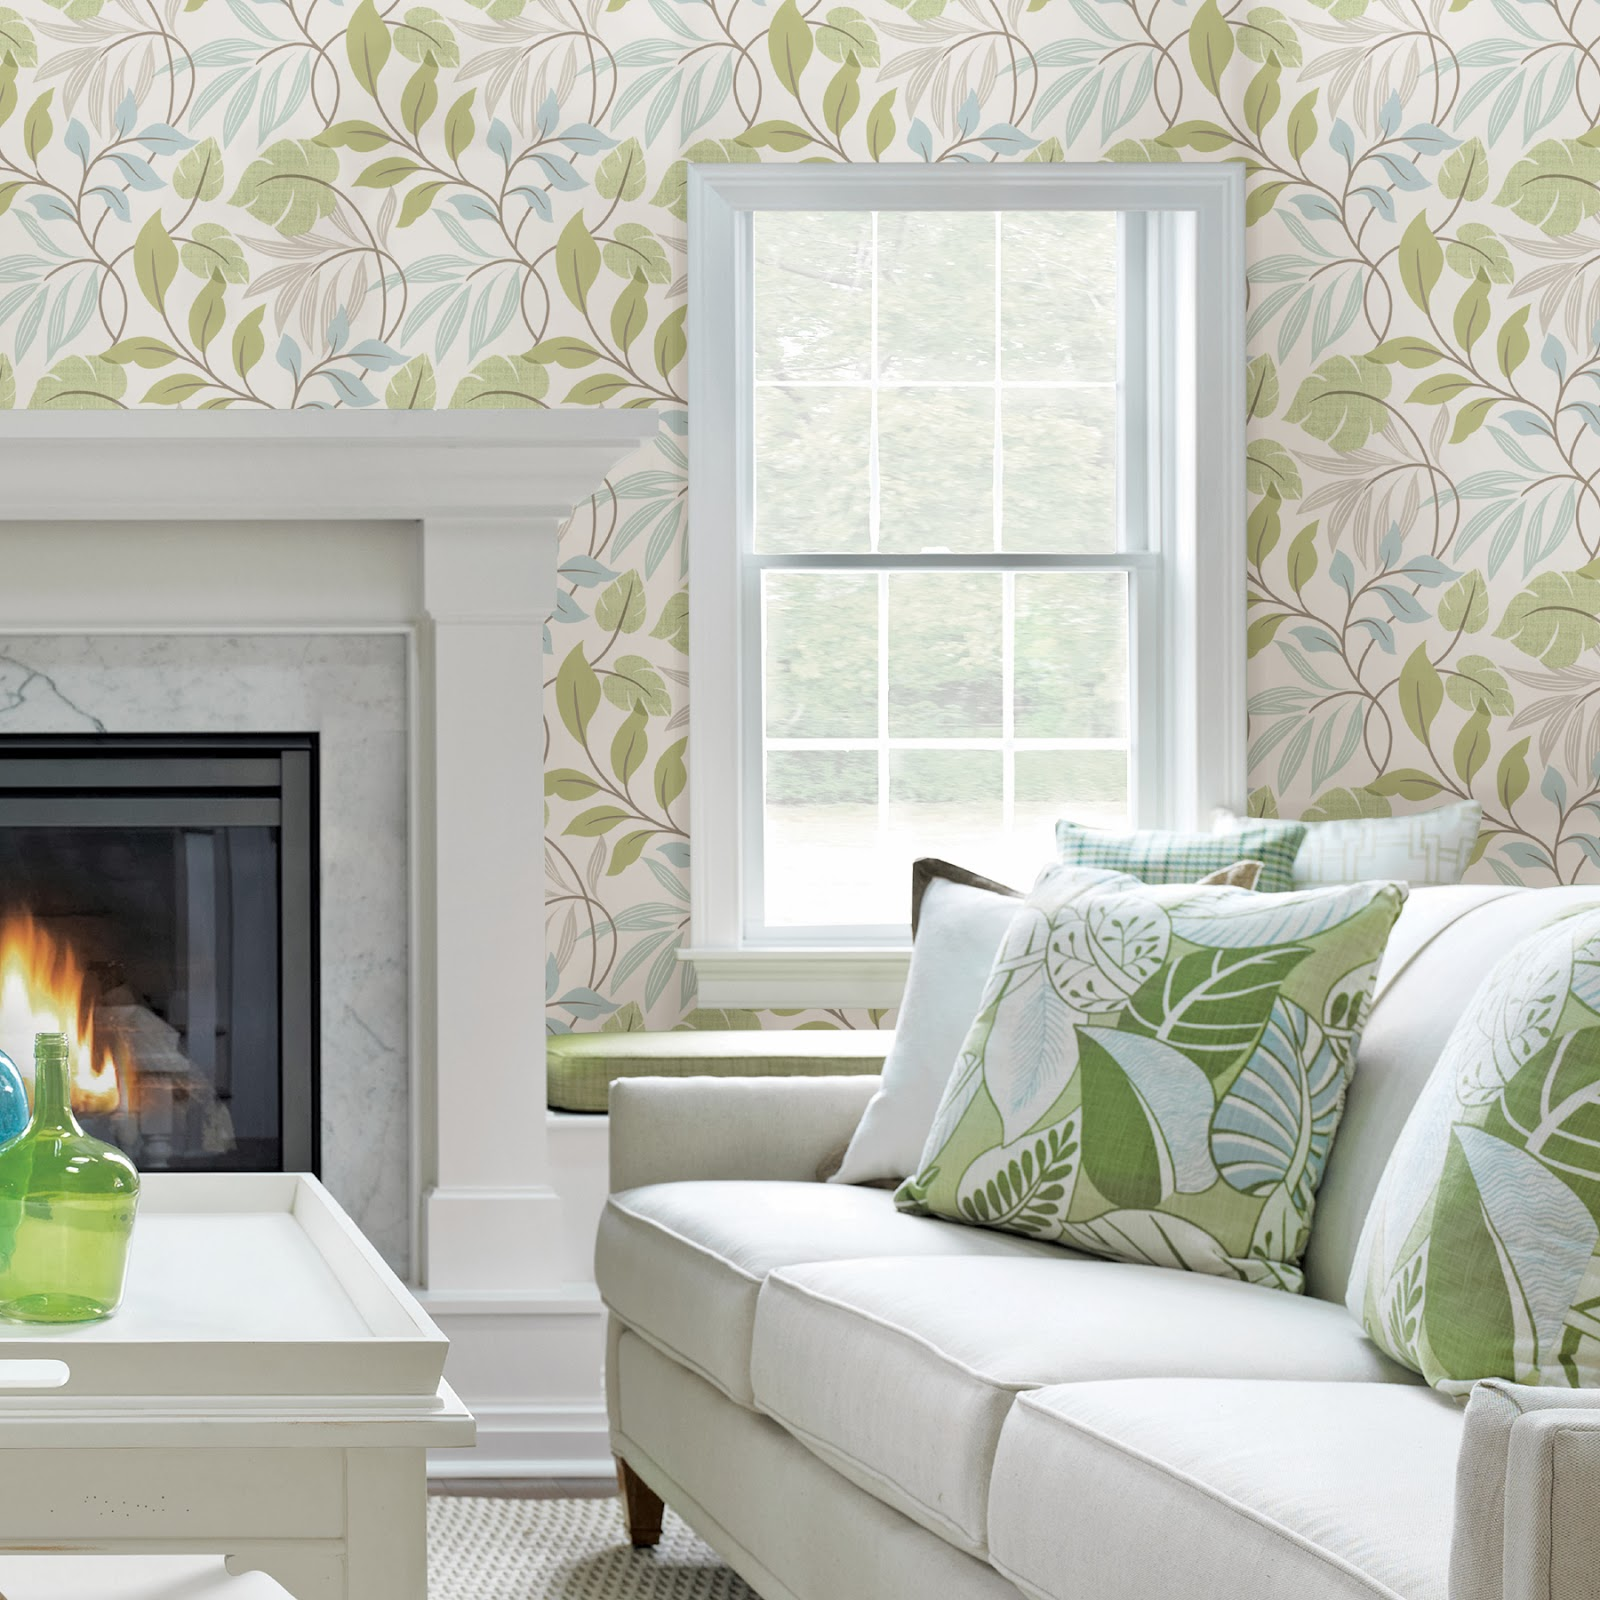 https://www.wallcoveringsforless.com/shoppingcart/prodlist1.CFM?page=_prod_detail.cfm&product_id=43310&startrow=1&search=Simple%20Space%202&pagereturn=_search.cfm